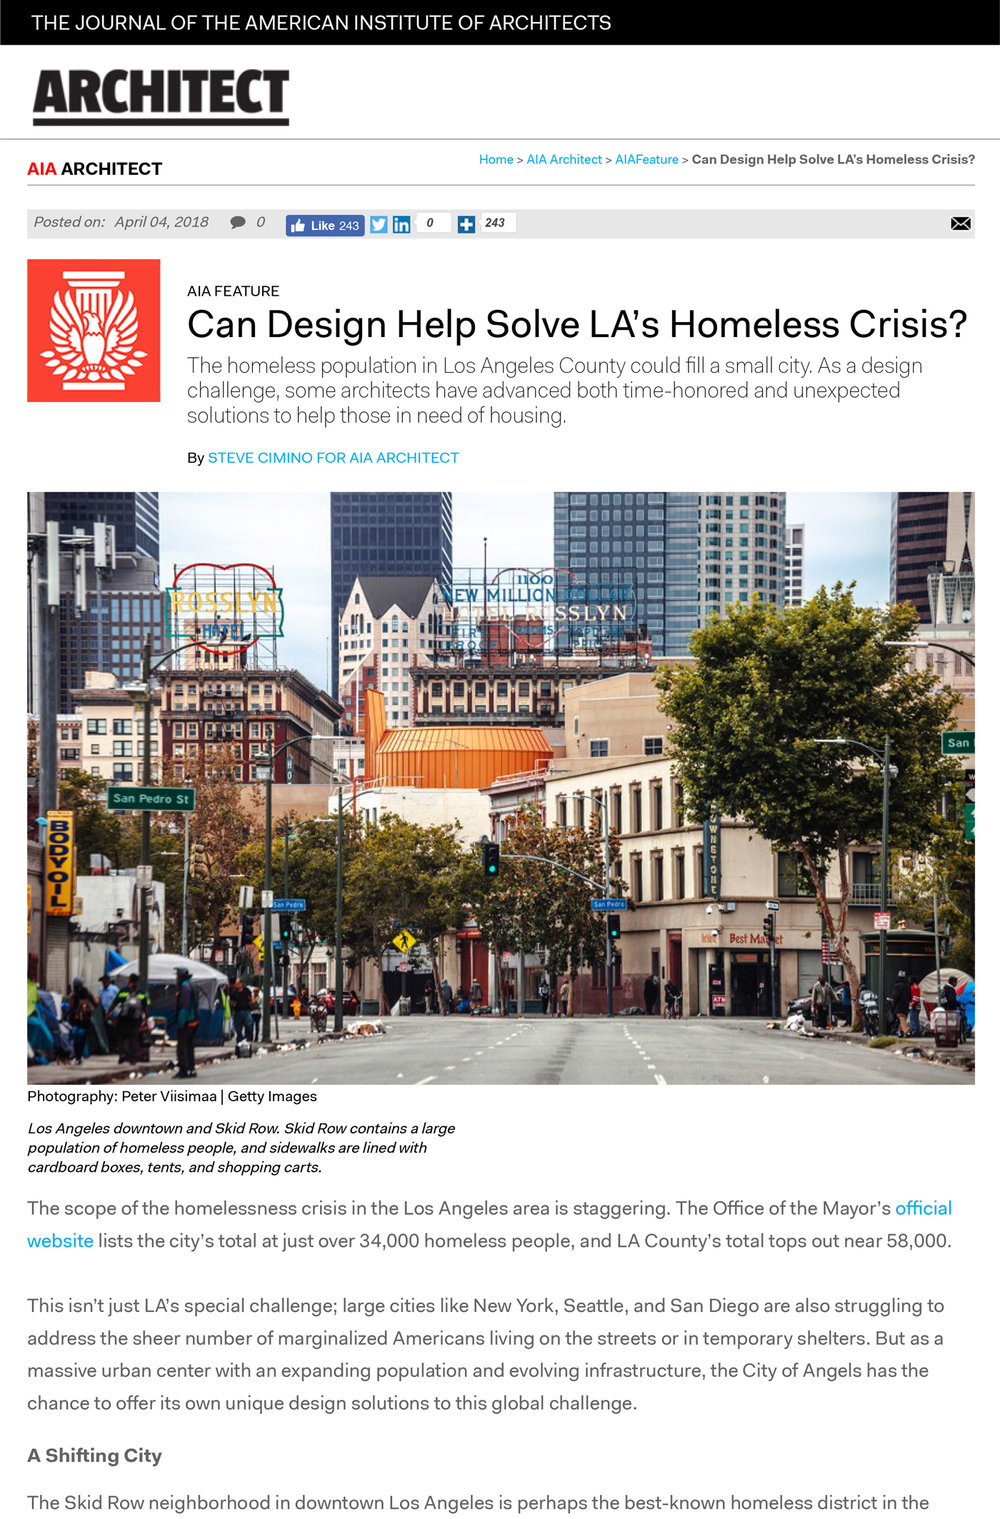 Archintect-Feature-Can-Design-Help-Solve-LA's-Homeless.jpg